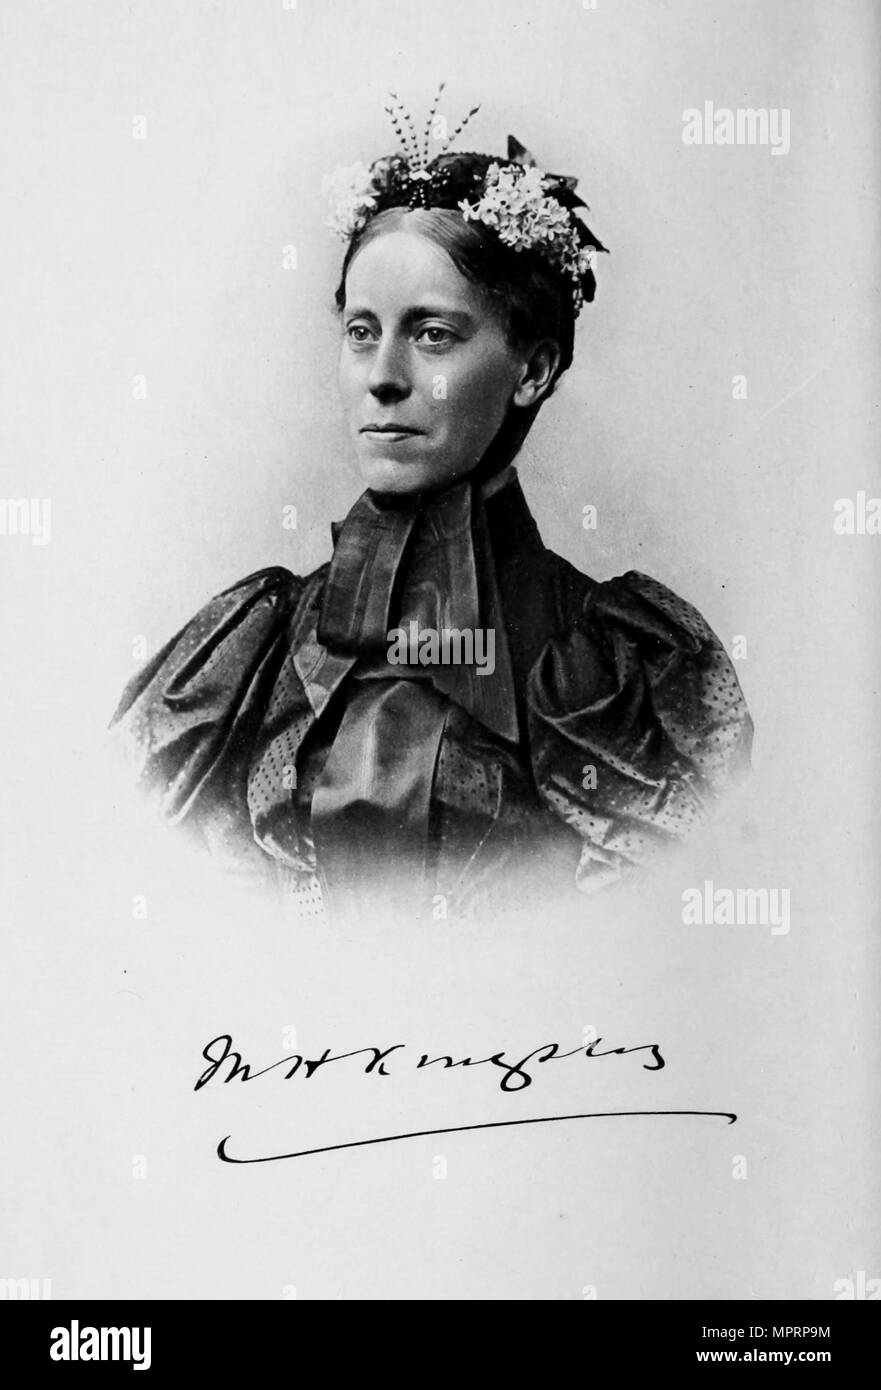 Mary Kingsley (1862-1900), c. 1900. - Stock Image